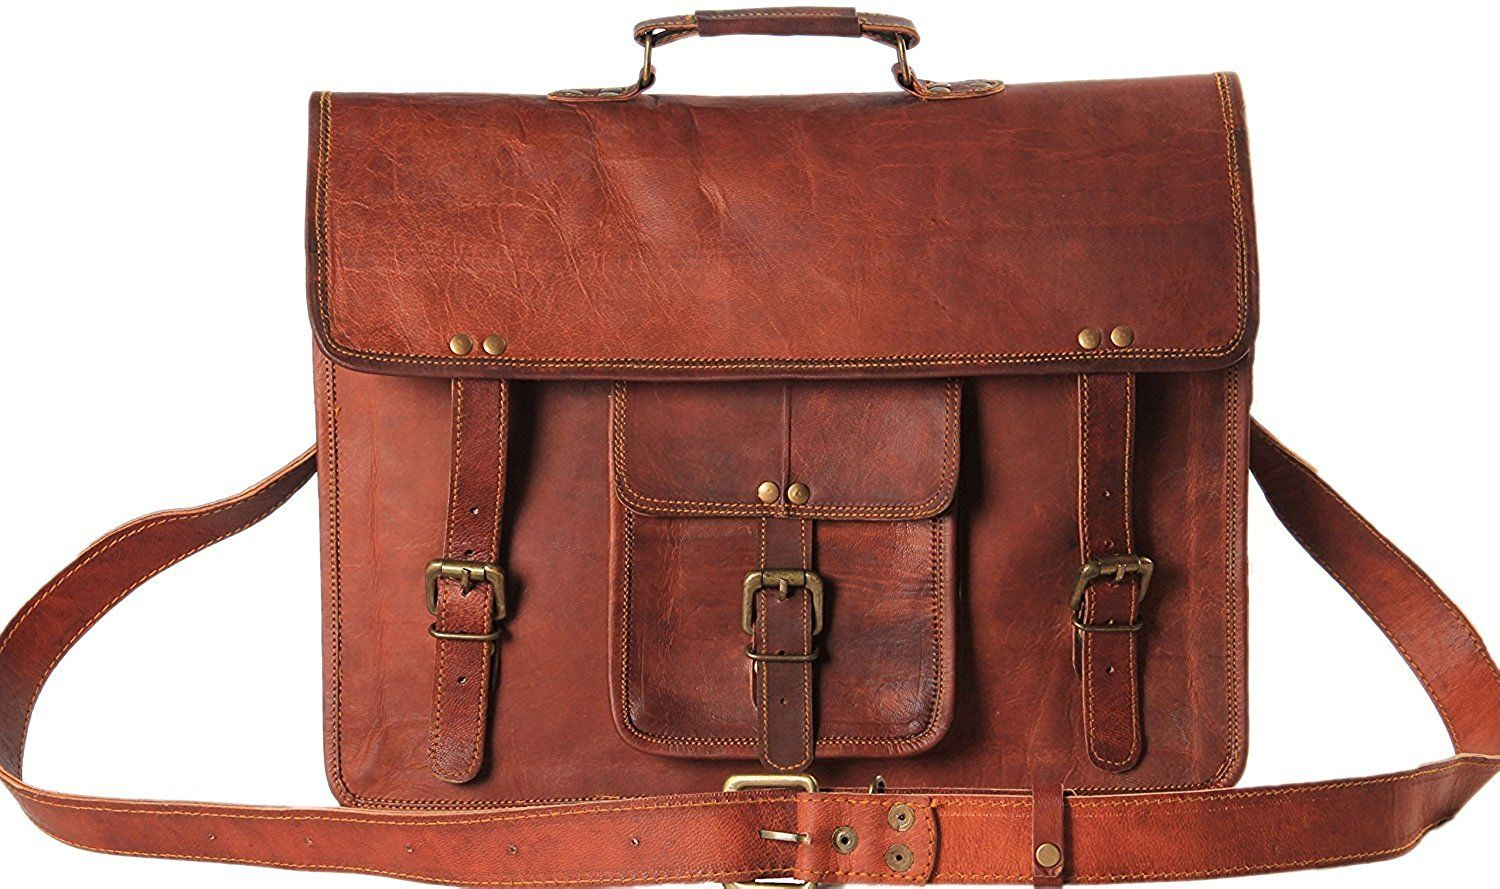 Handmadecart Messenger Bags for Men and Women Leather Laptop Briefcase Shoulder Satchel Crossbody Brown and Dark Brown Bag >>> Learn more by visiting the image link.